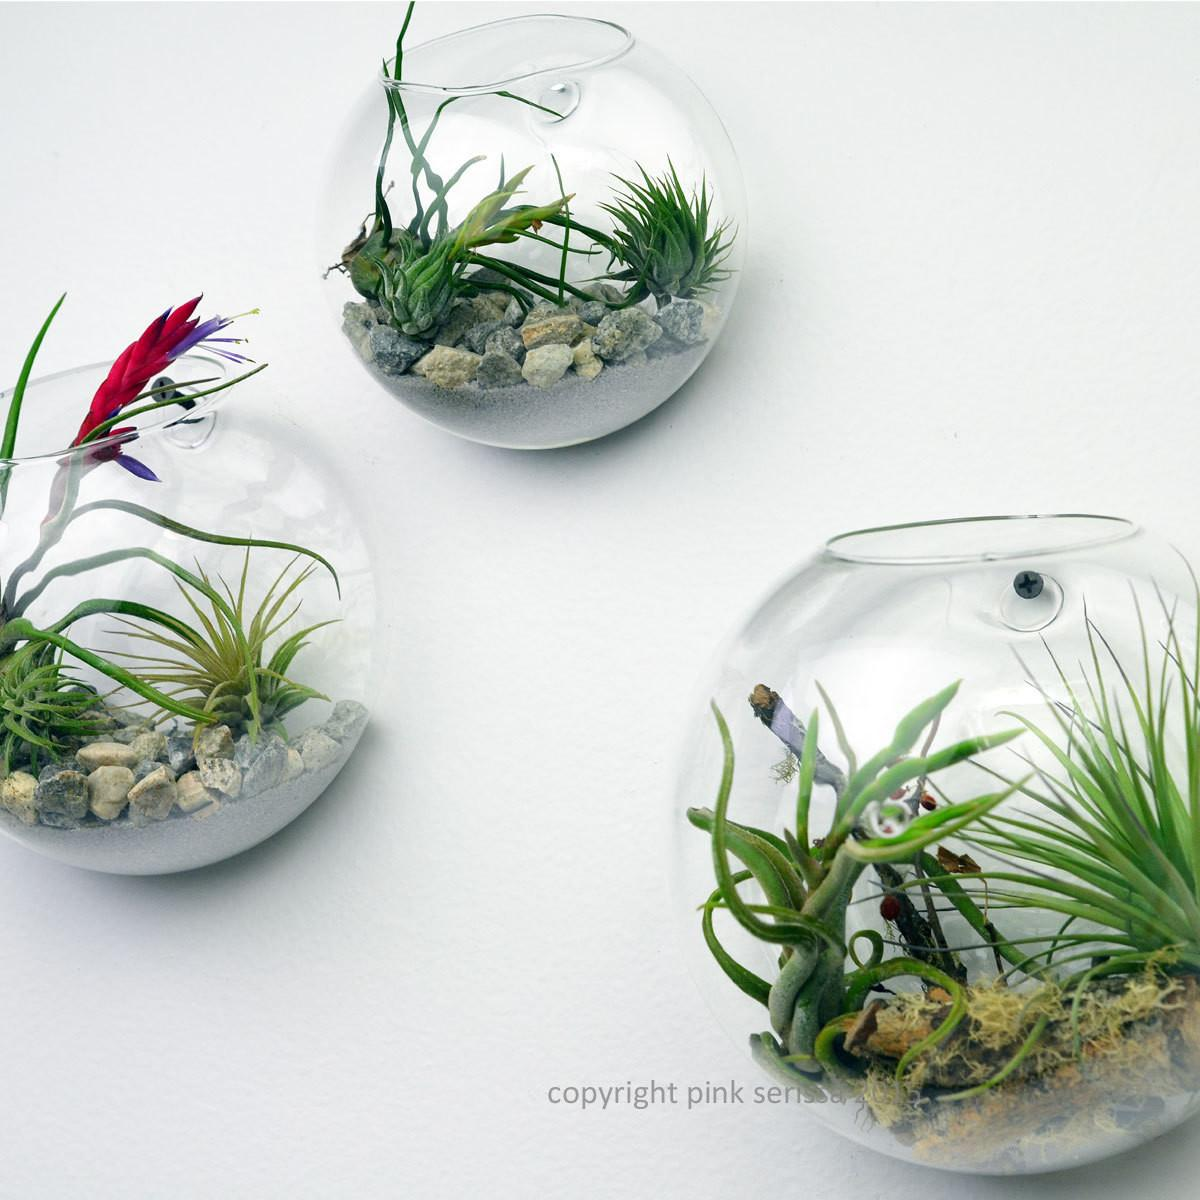 Wall Terrarium Living Air Plant Pinkserissa